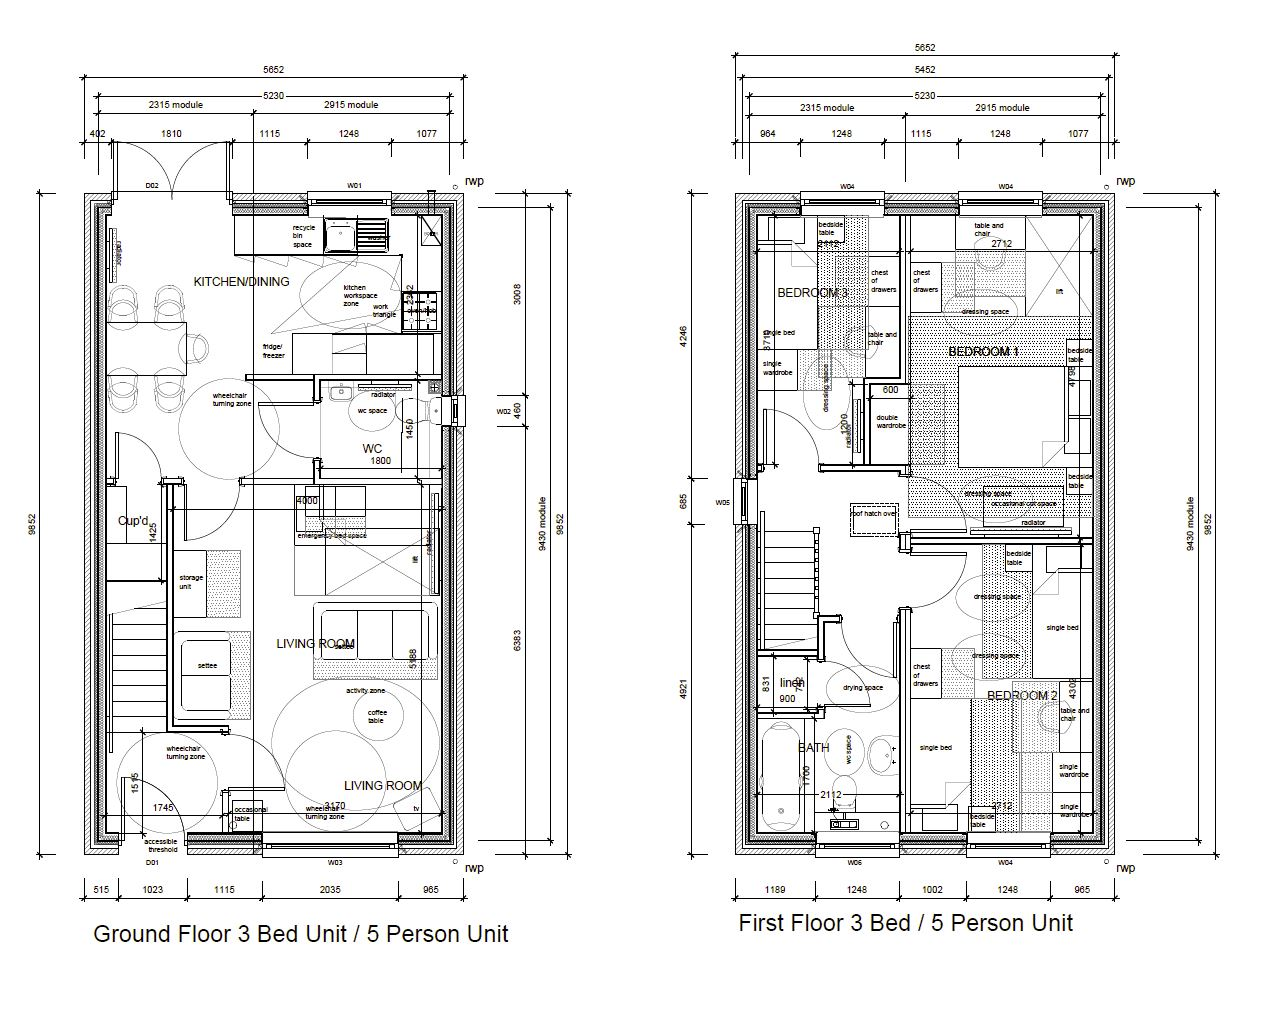 Precision Homes Helford 3 Bed 5 Person Floor Plan